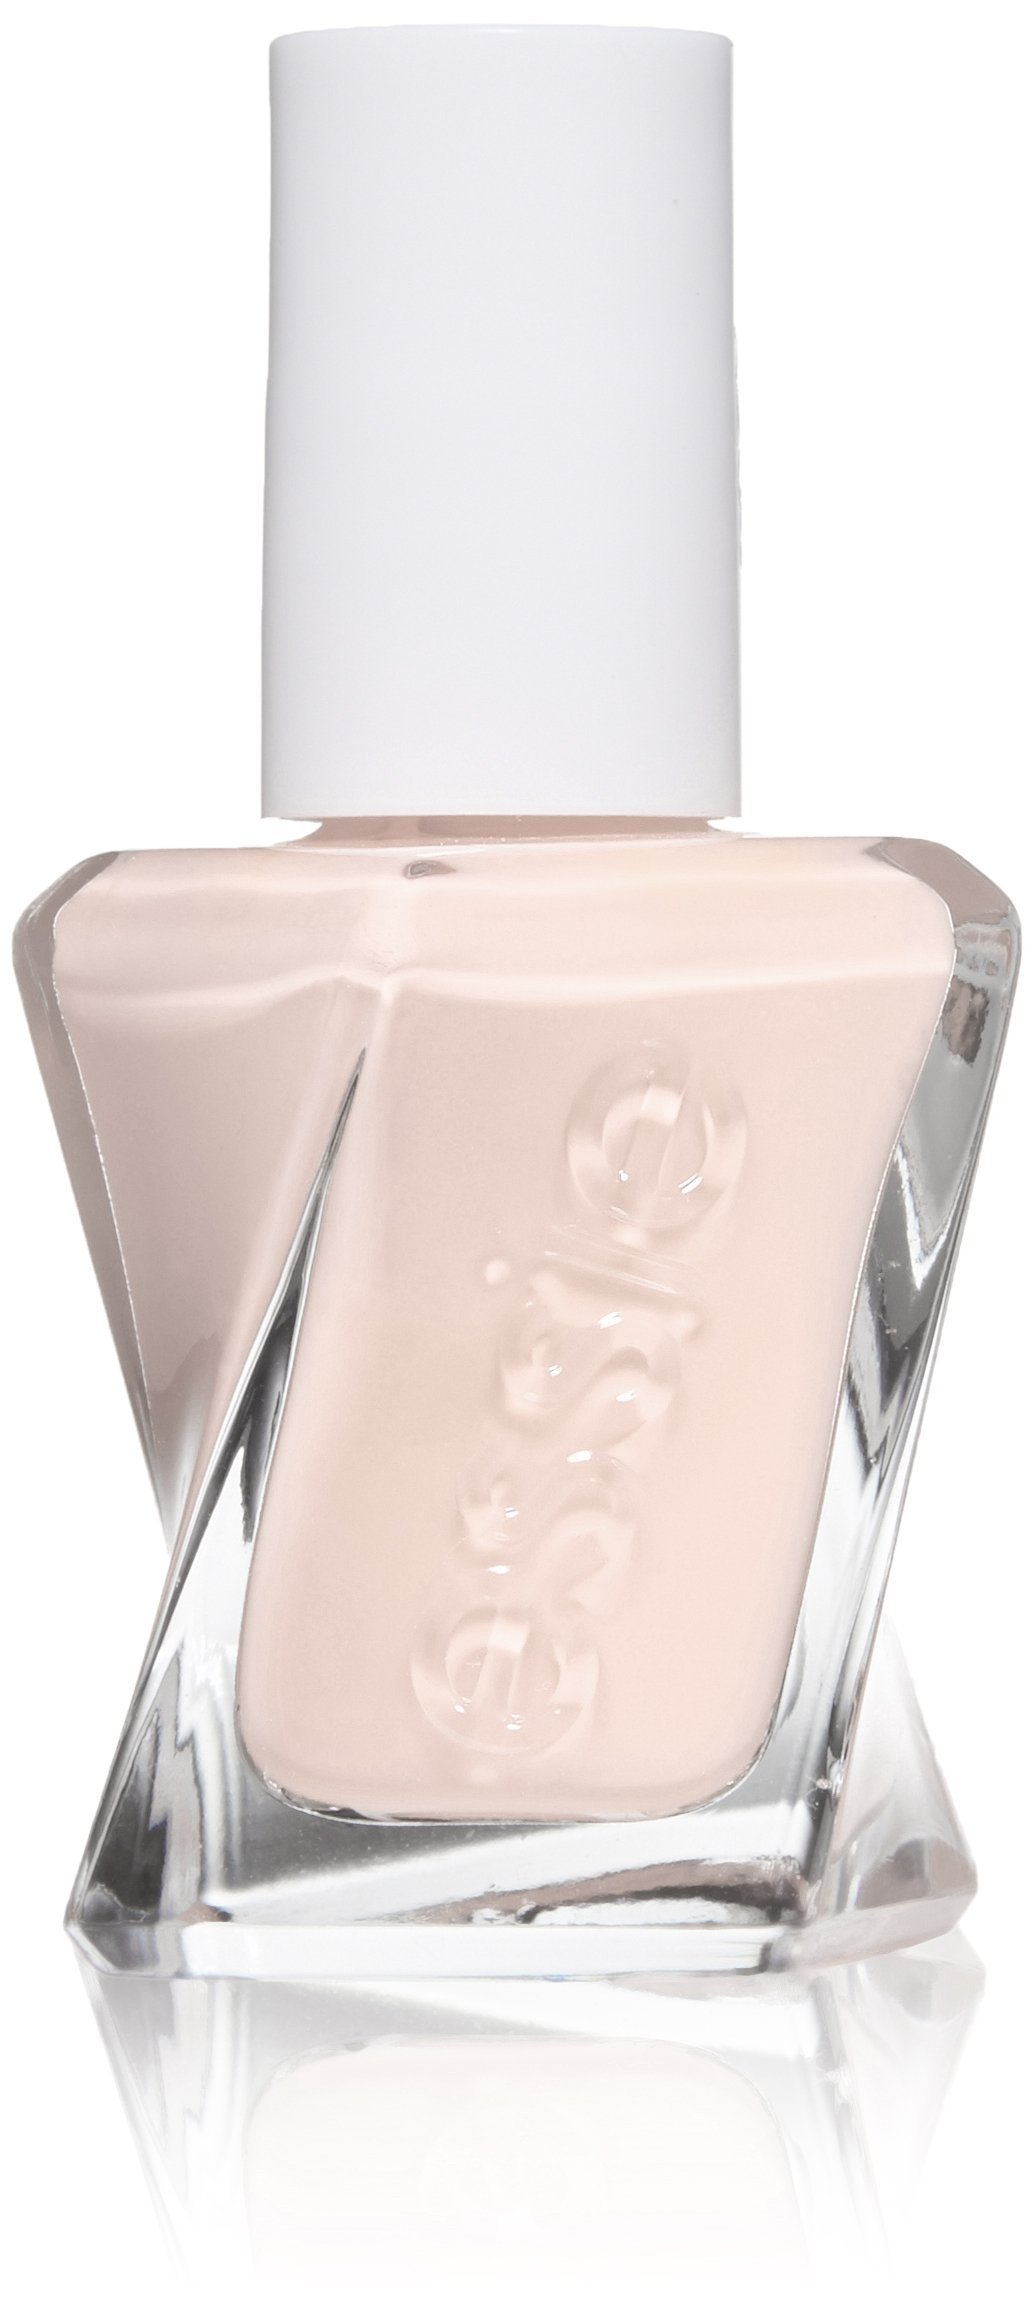 Amazon.com: essie gel couture nail polish, closing night, 0.46 fl ...